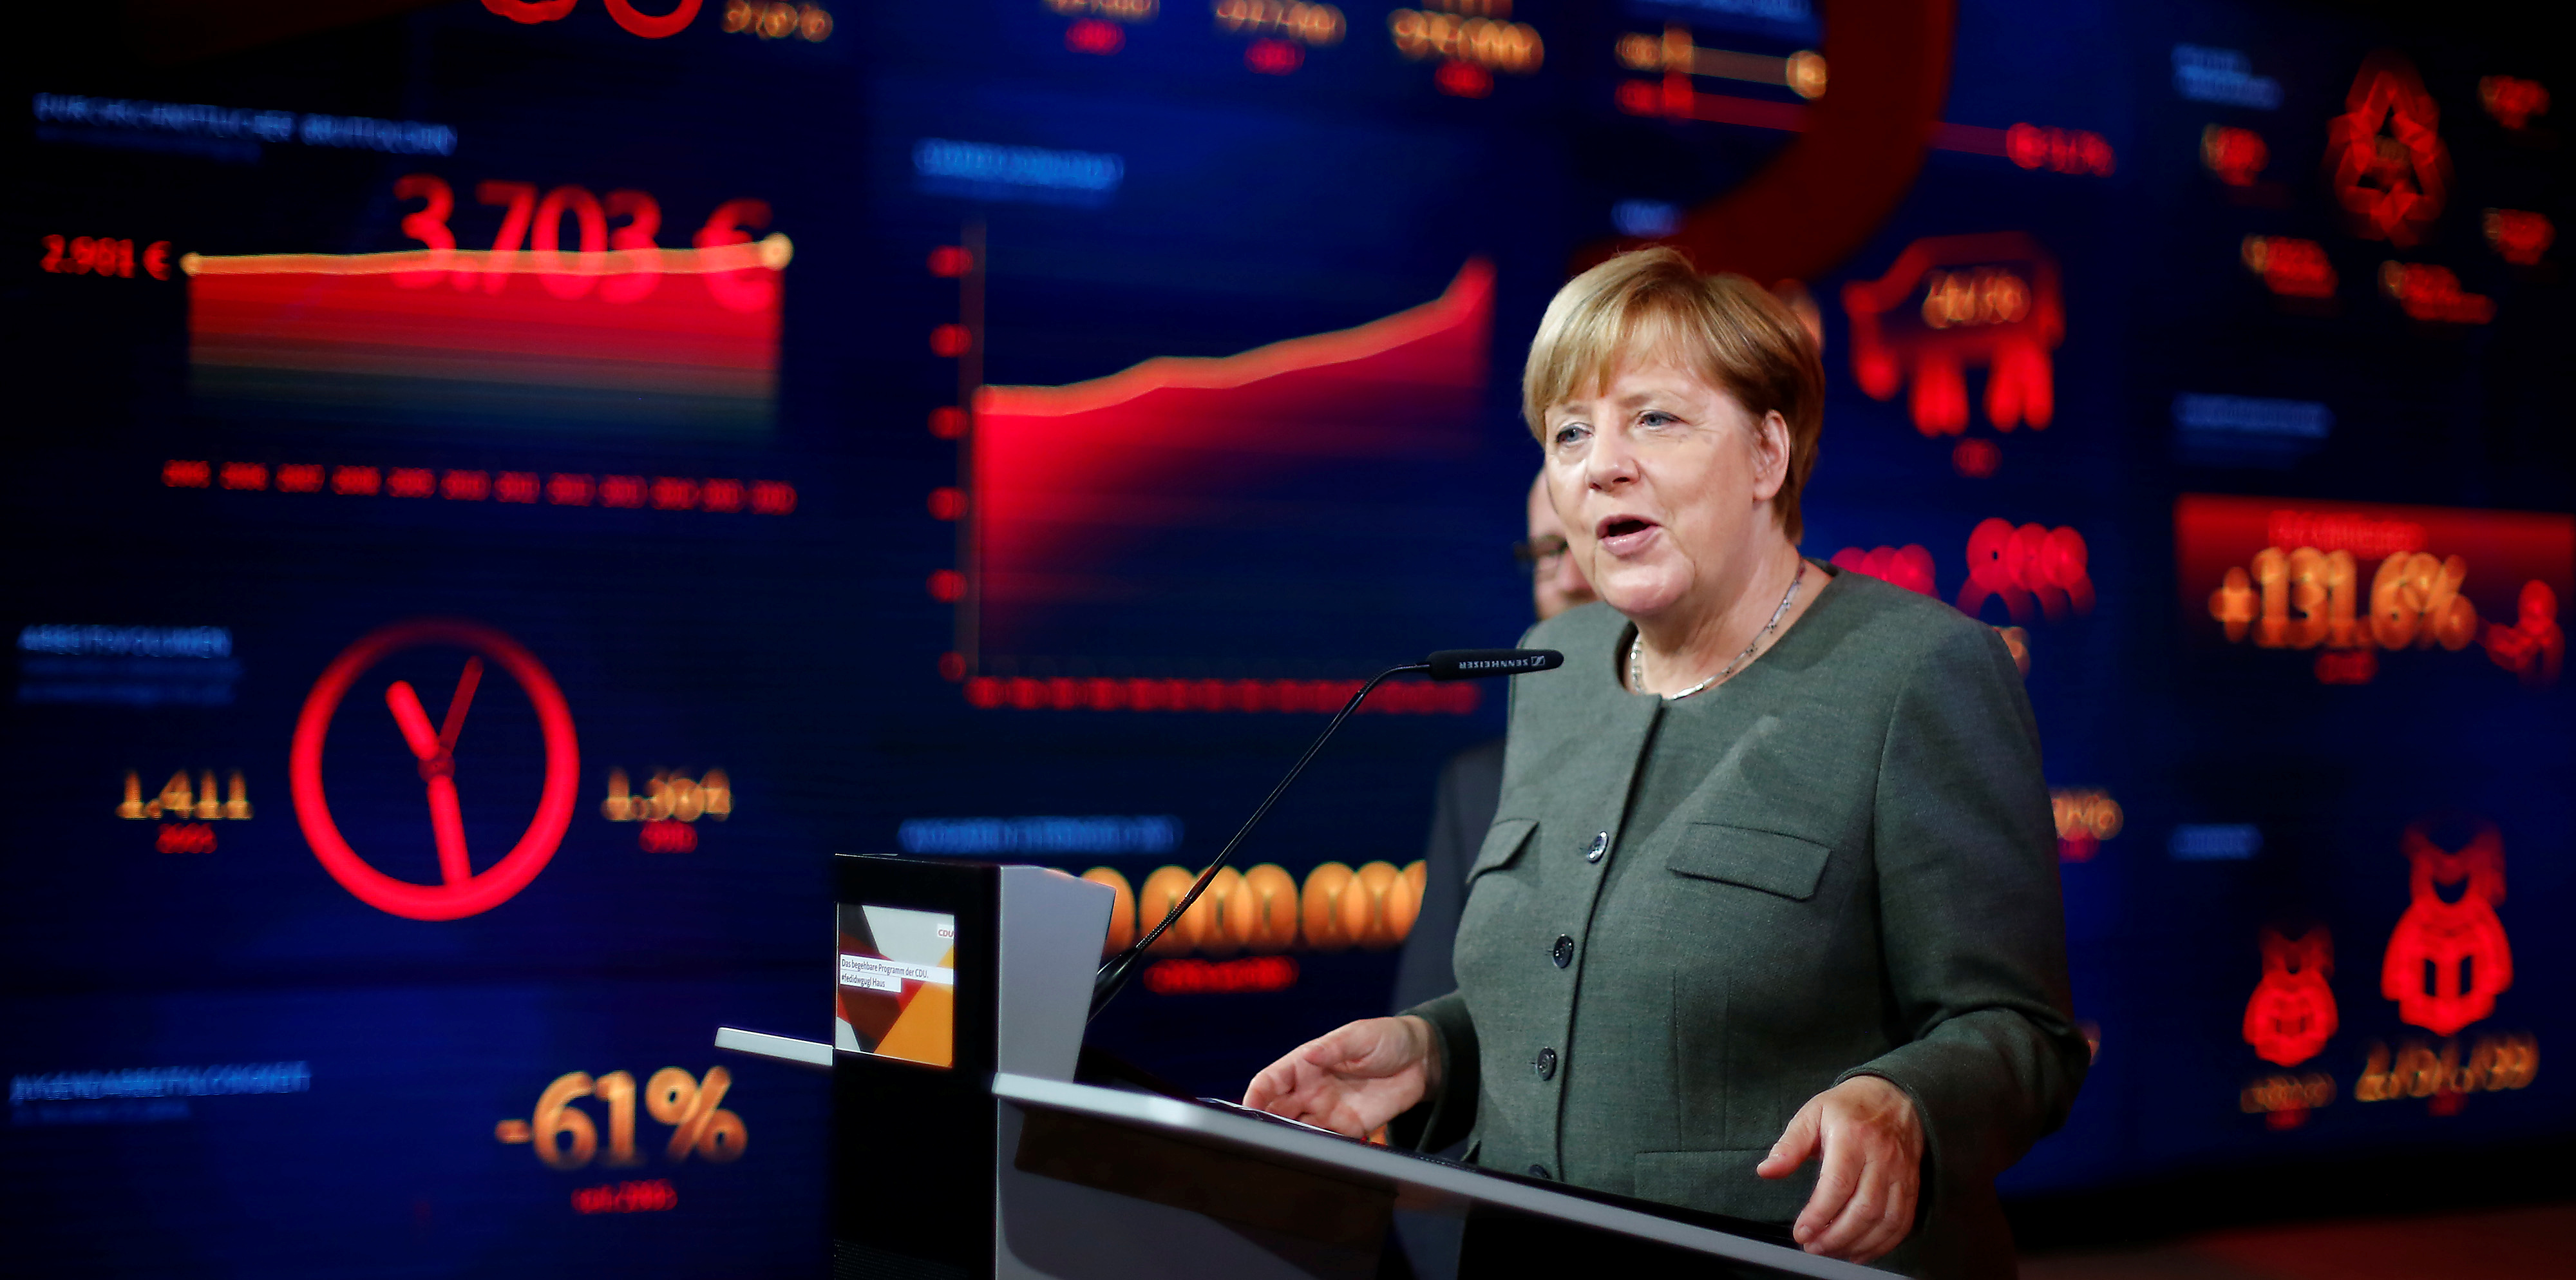 German Chancellor Angela Merkel, top candidate of the Christian Democratic Union Party (CDU), presents the new interactive election campaign ahead of the upcoming federal election in Berlin, Germany August 18, 2017. REUTERS/Hannibal Hanschke